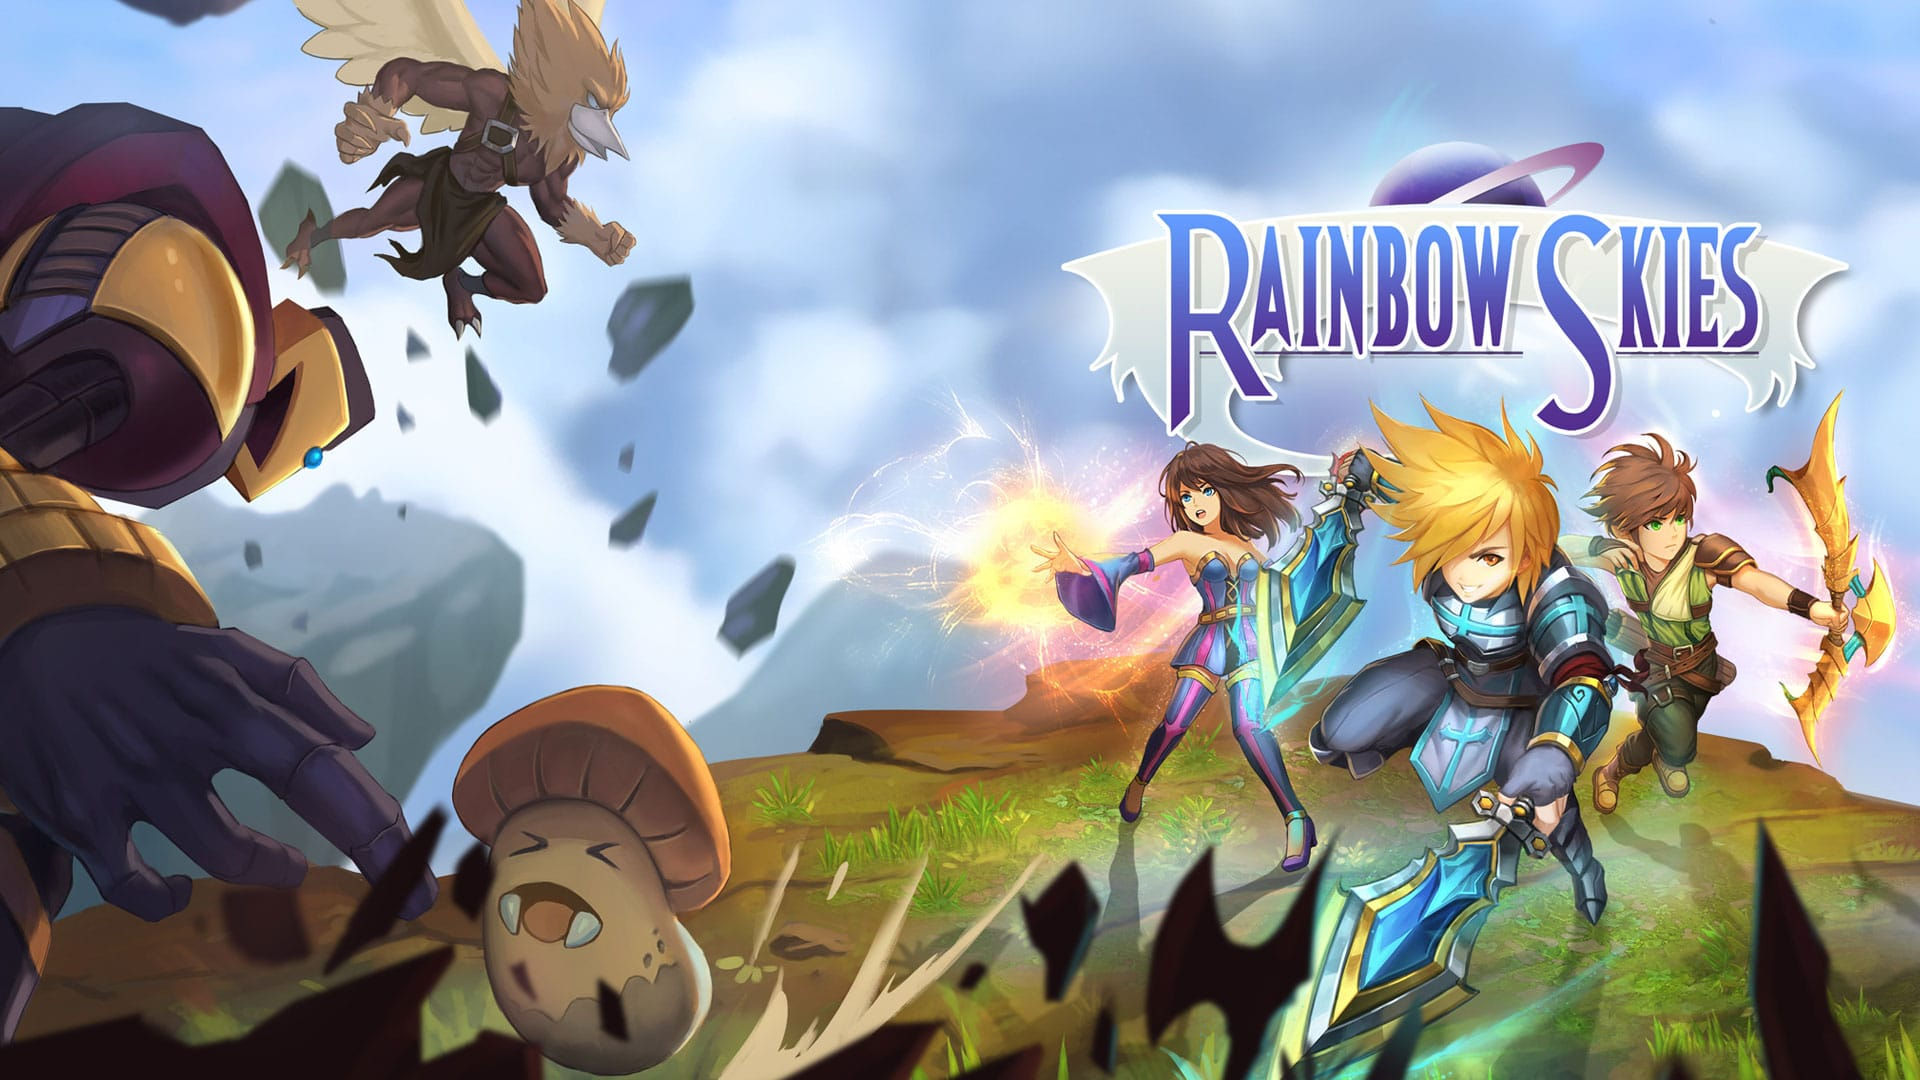 Rainbow Skies (PS4, PS Vita) Review